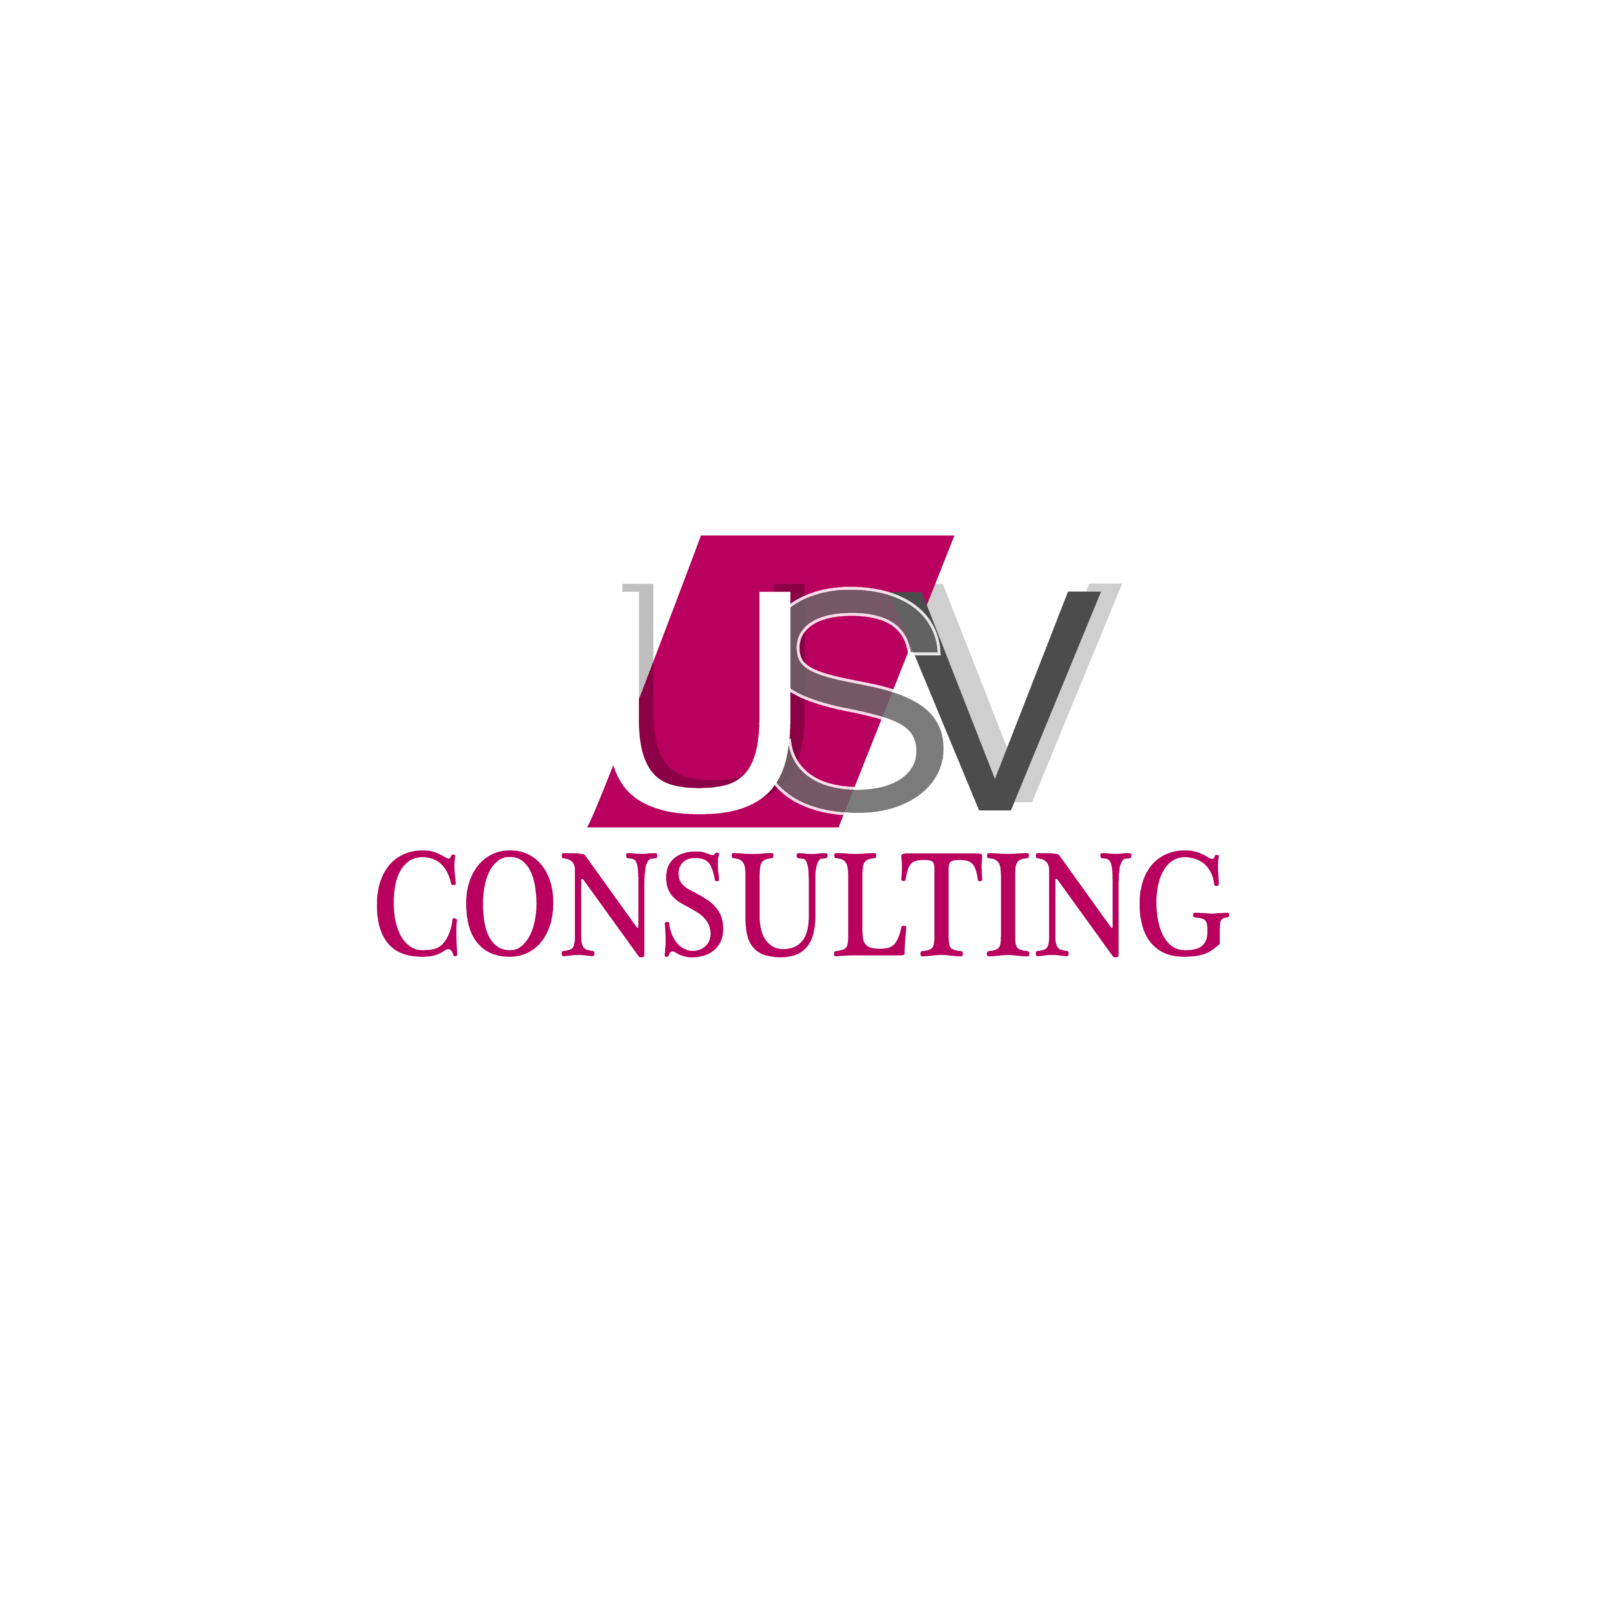 Usv-Consulting